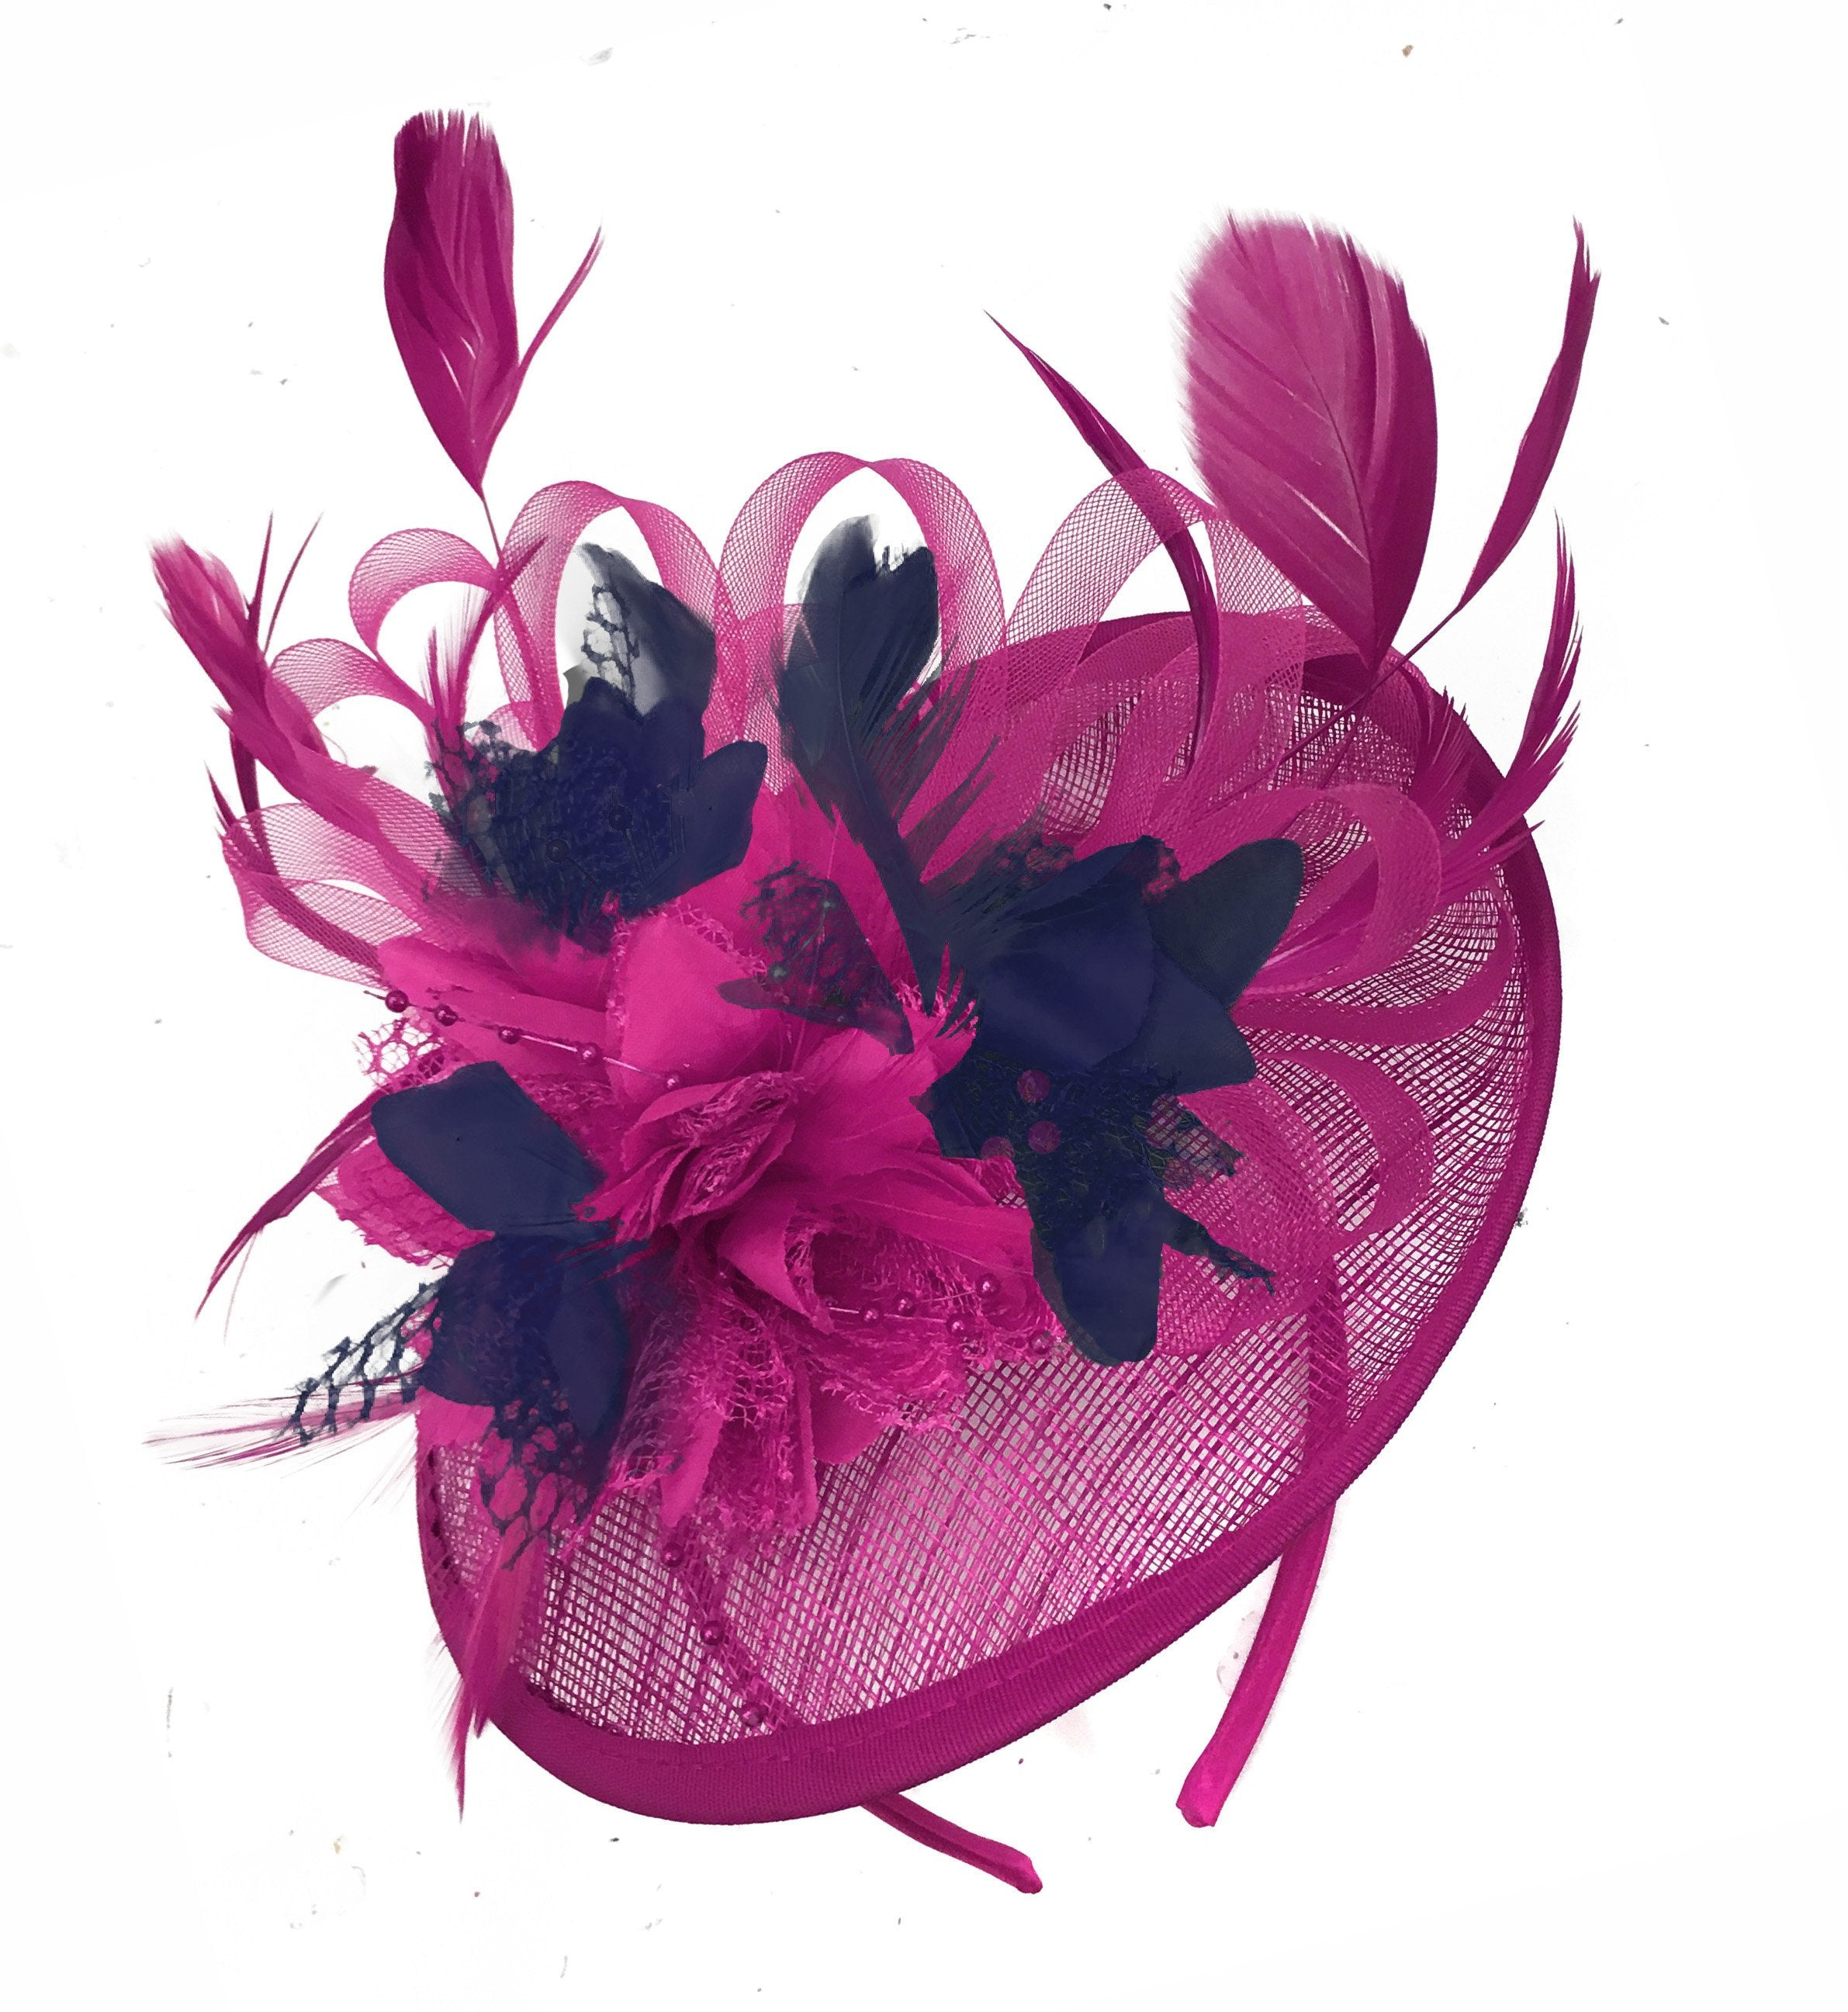 Caprilite Fuchsia Hot Pink and Navy Blue Sinamay Disc Saucer Fascinator Hat for Women Weddings Headband